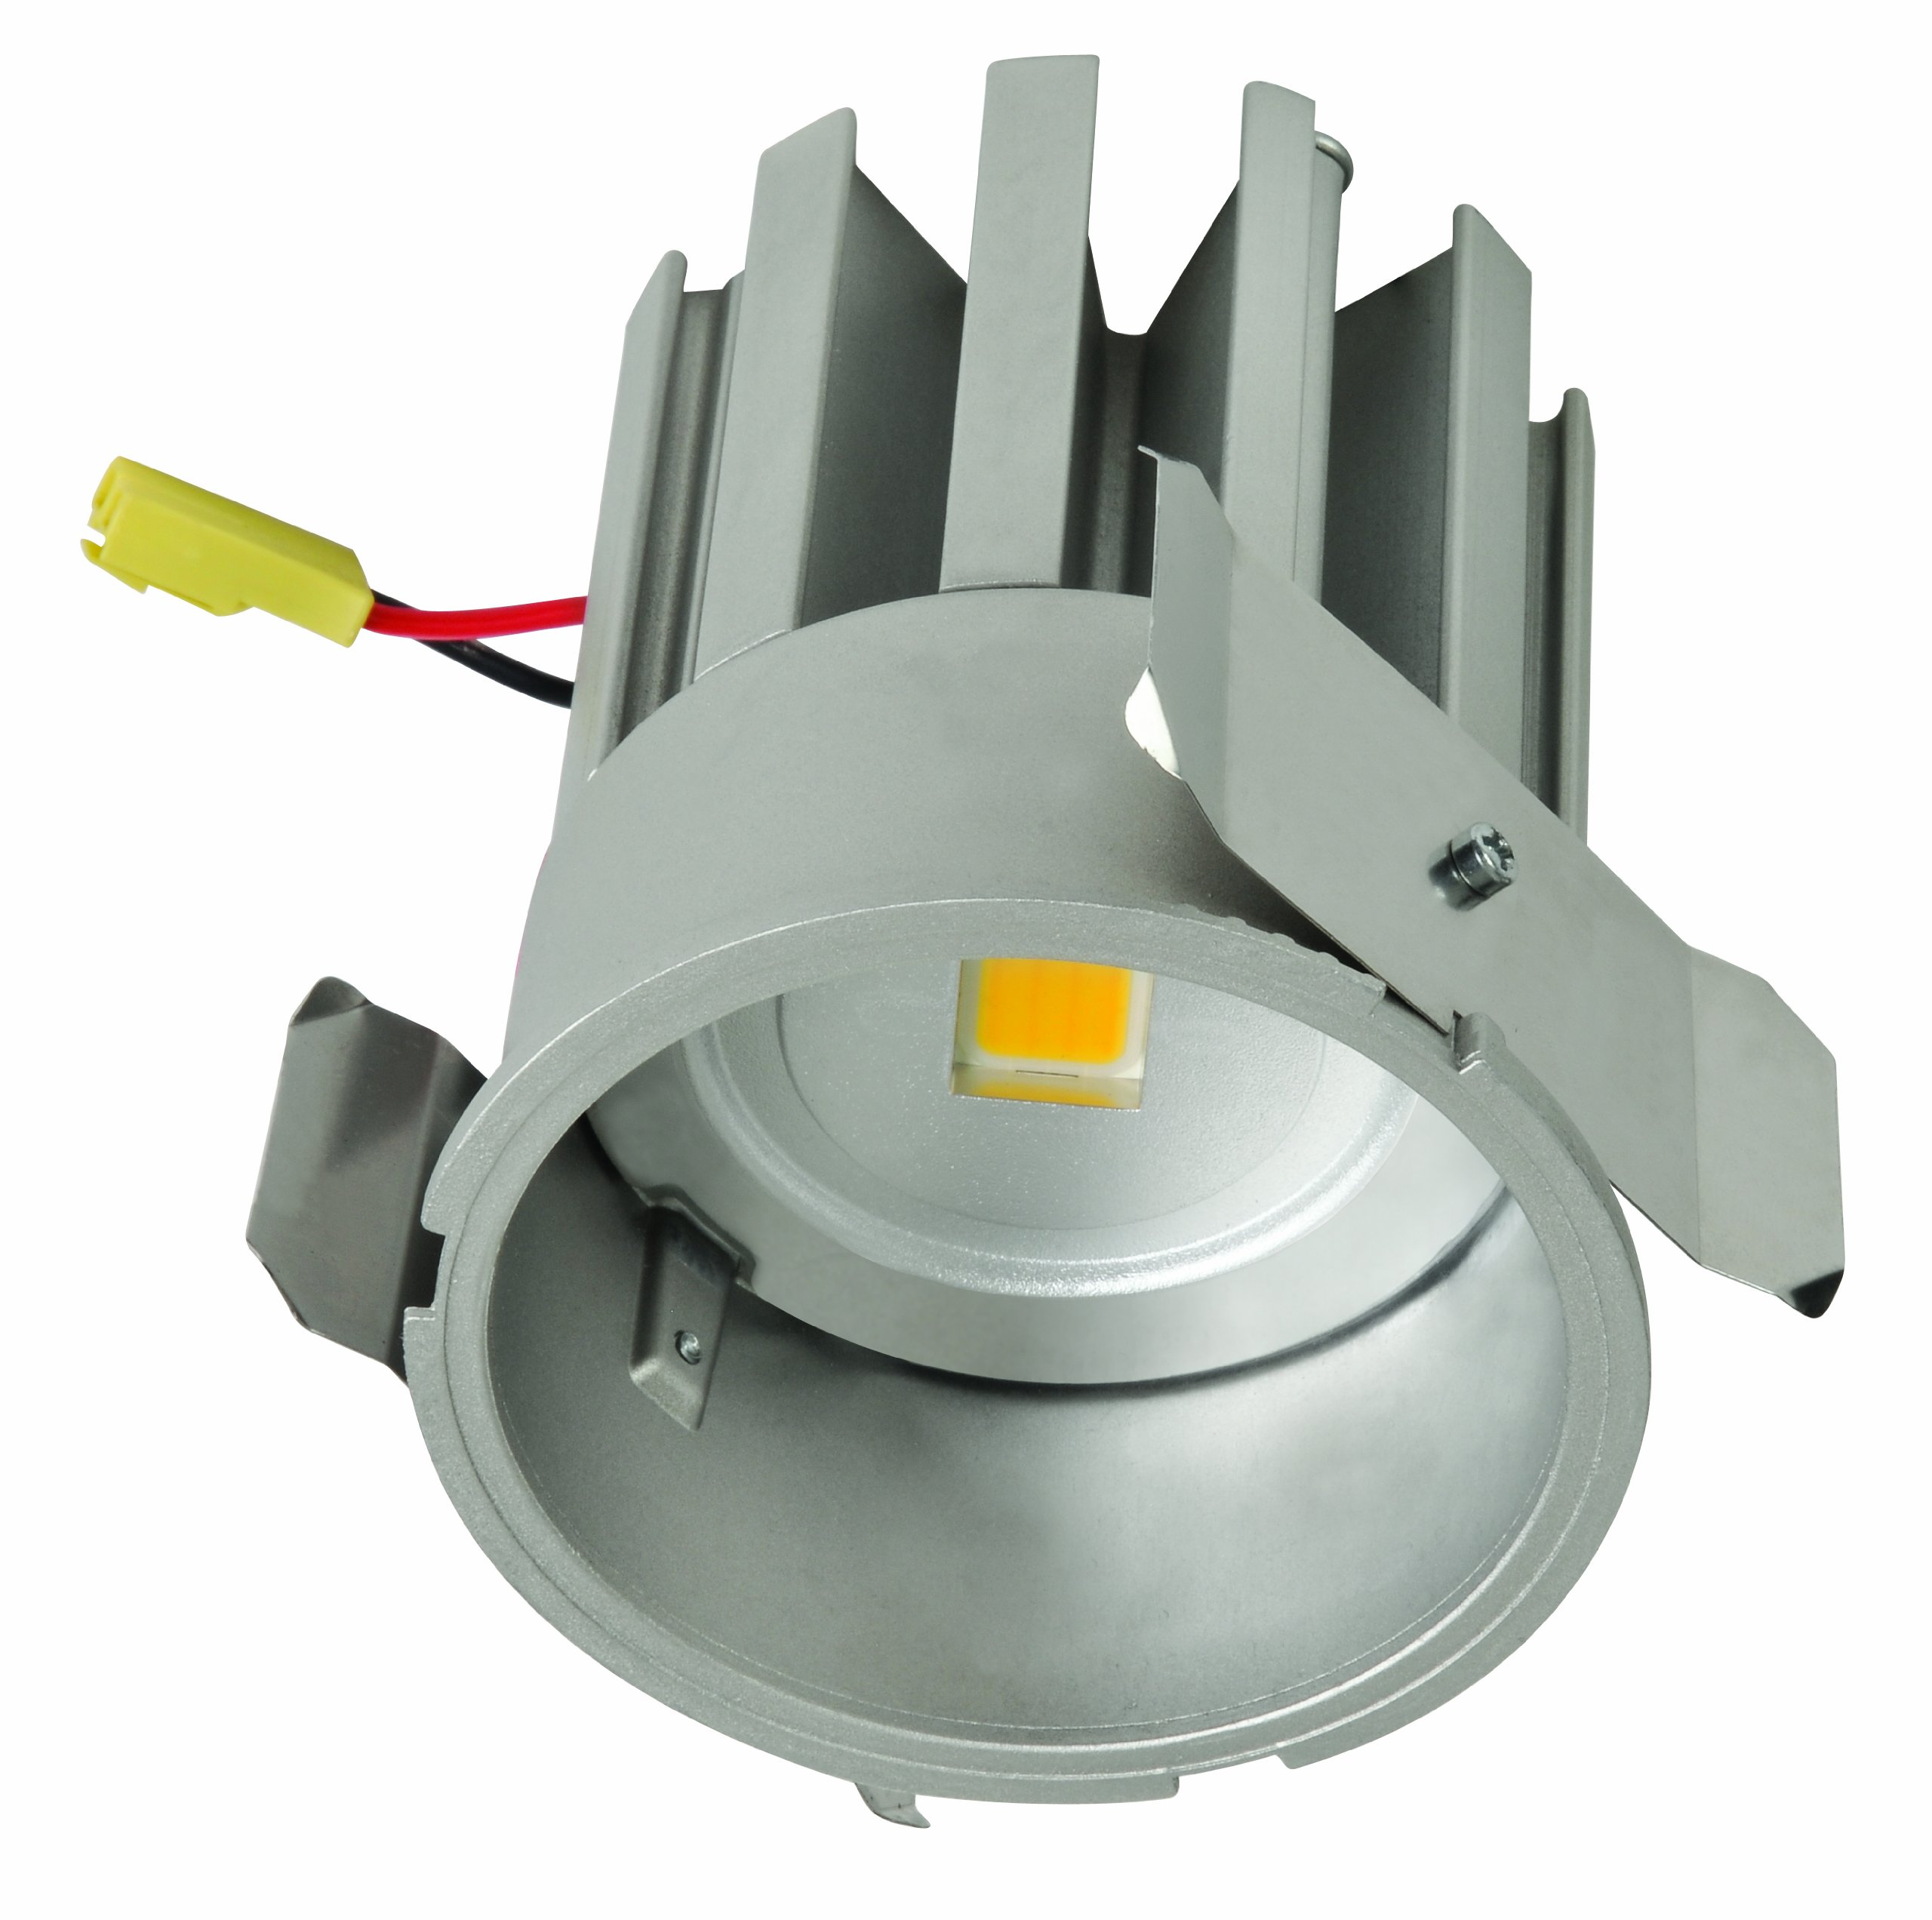 Halo Recessed HALO Recessed EL406935 4-Inch 3500K LED Light Engine